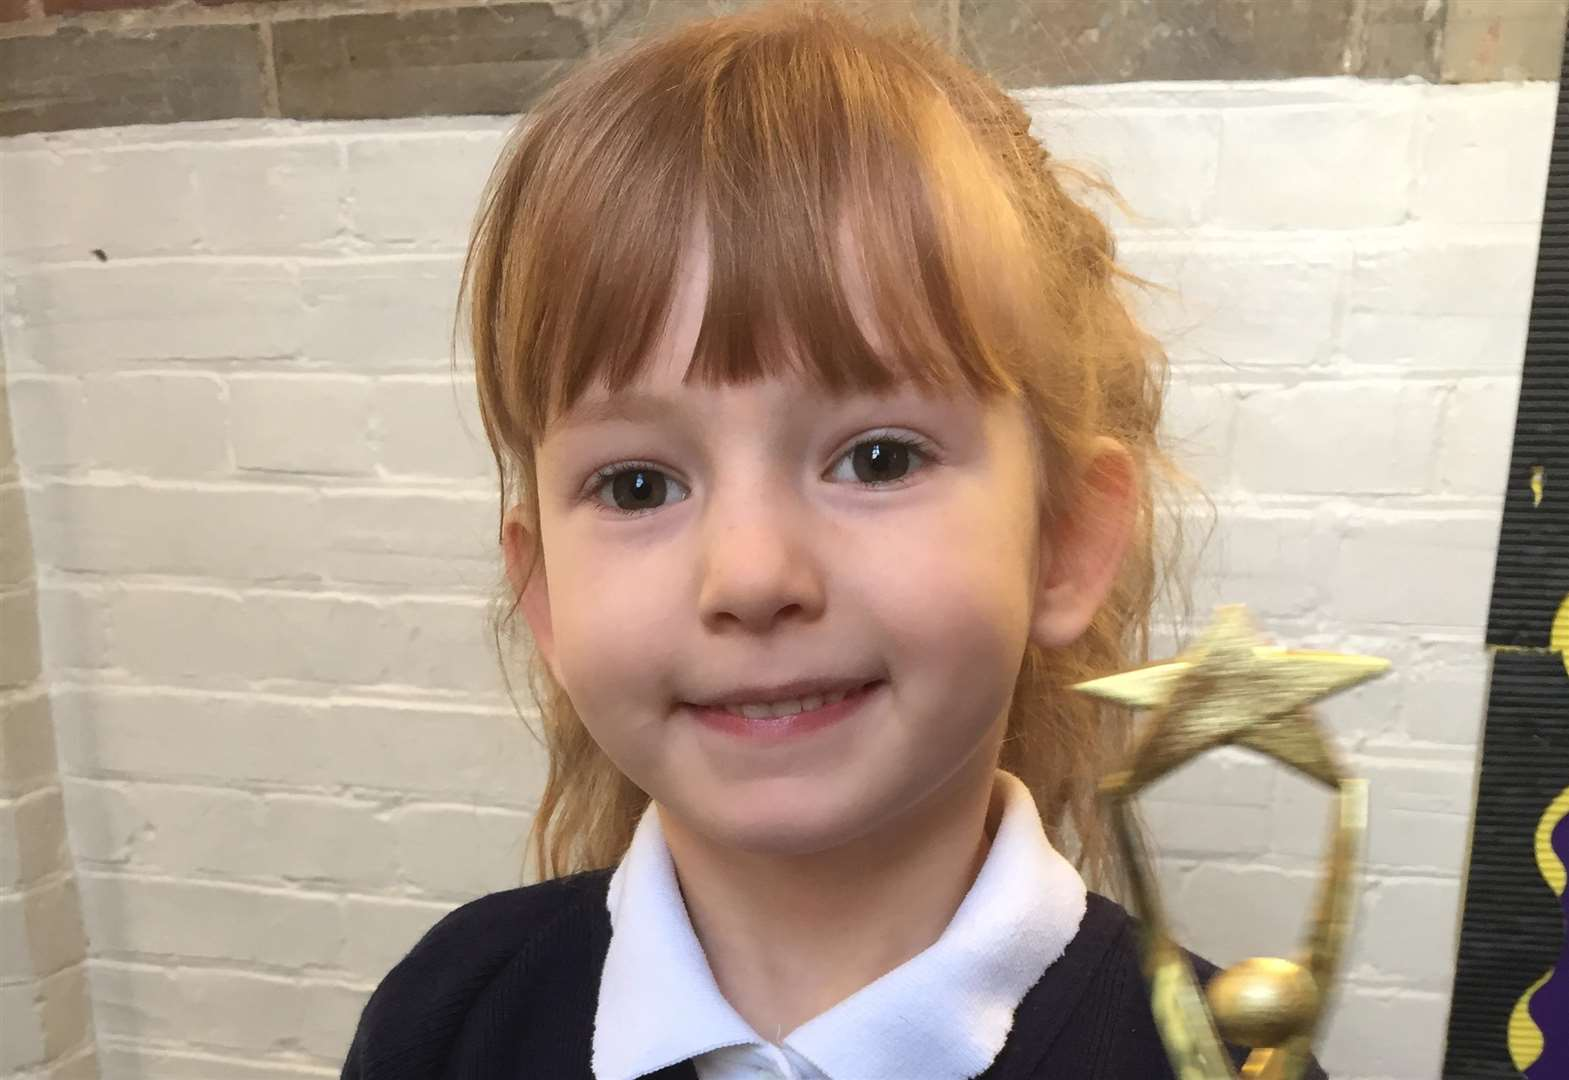 Five-year-old Glemsford girl praised for brave actions after mother hurt in fall